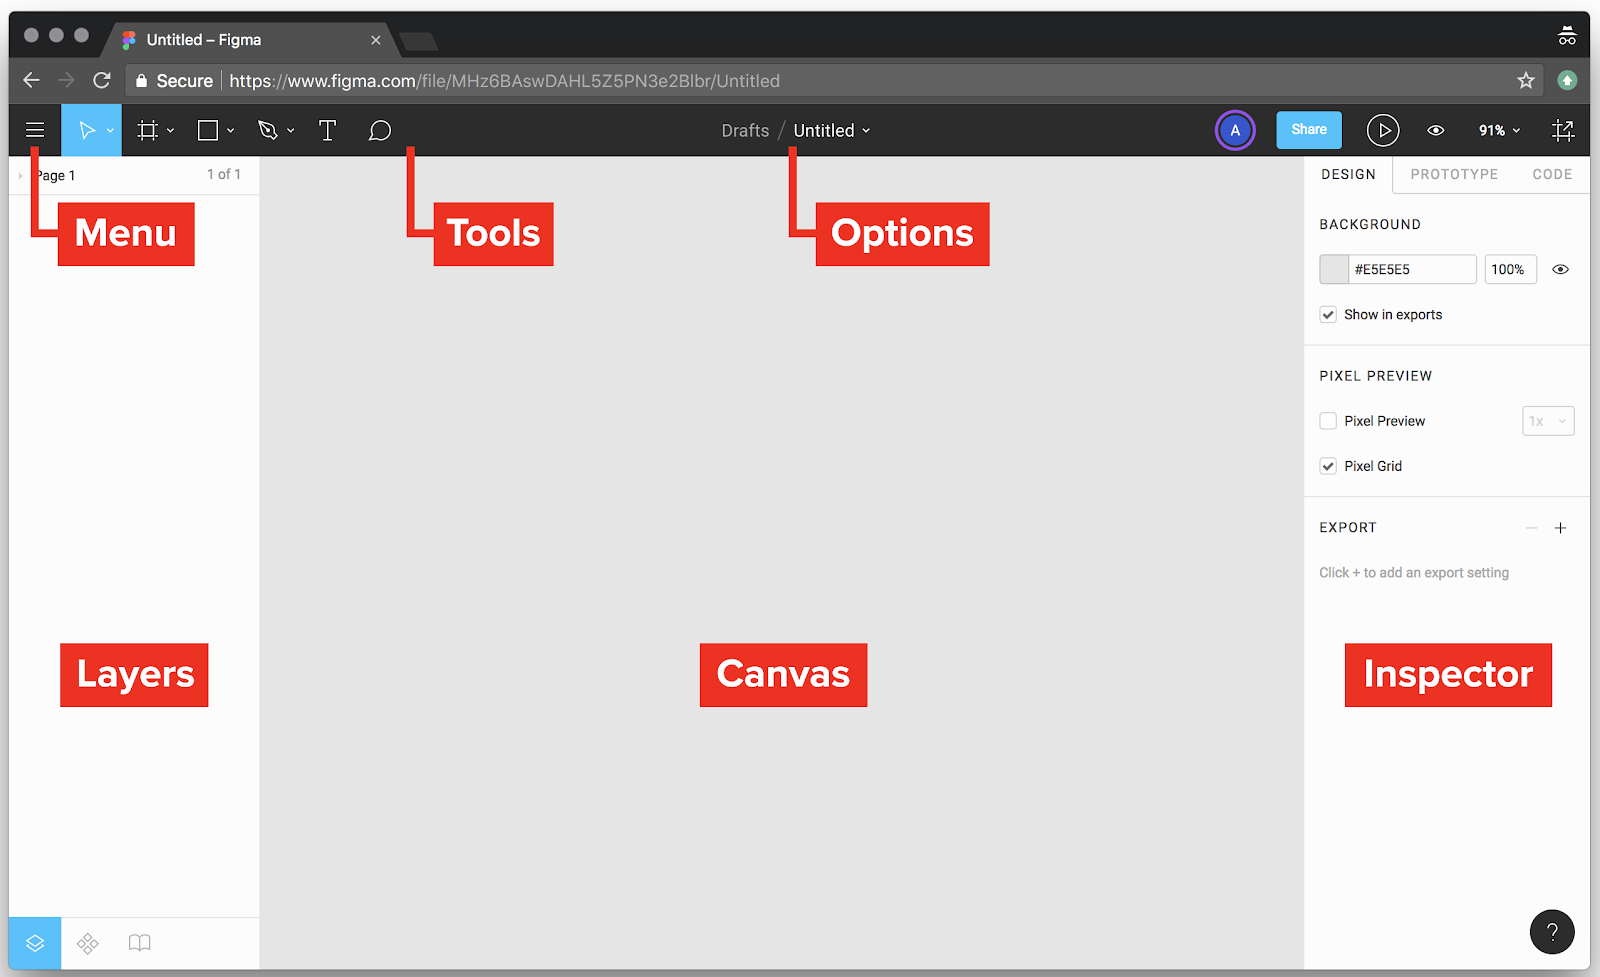 Take a look around the Figma interface